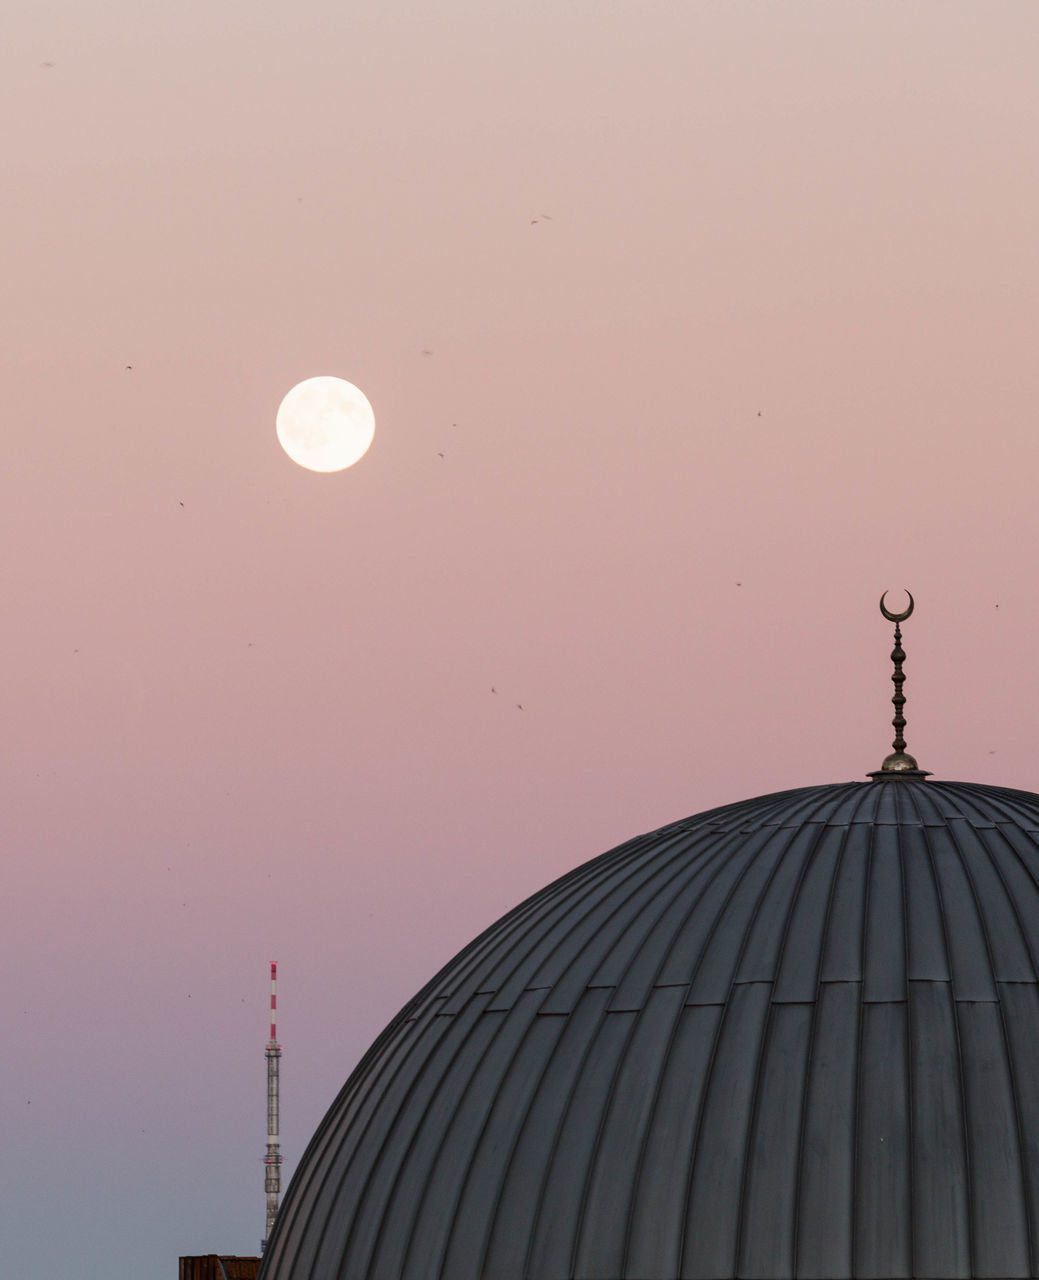 architecture, built structure, building exterior, sunset, clear sky, moon, dome, no people, sky, outdoors, day, nature